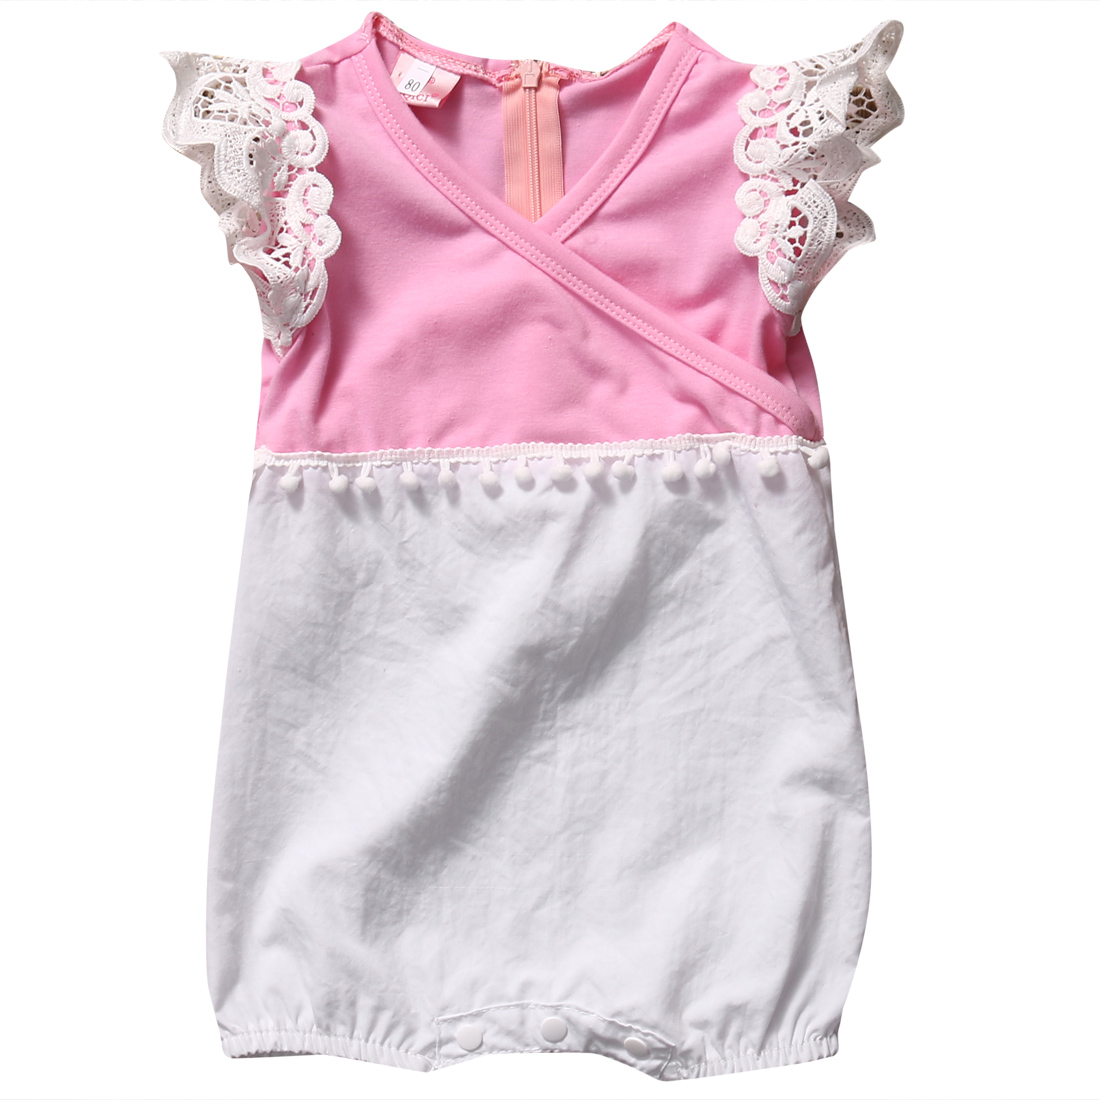 Helen115 New Cute Infant Newborn Baby Girl Clothes Cotton Lace Short Sleeve Bodysuit Outfits cute newborn baby girl clothes set short sleeve letter print short sleeve romper bodysuit ruffled legging warmers headband suit